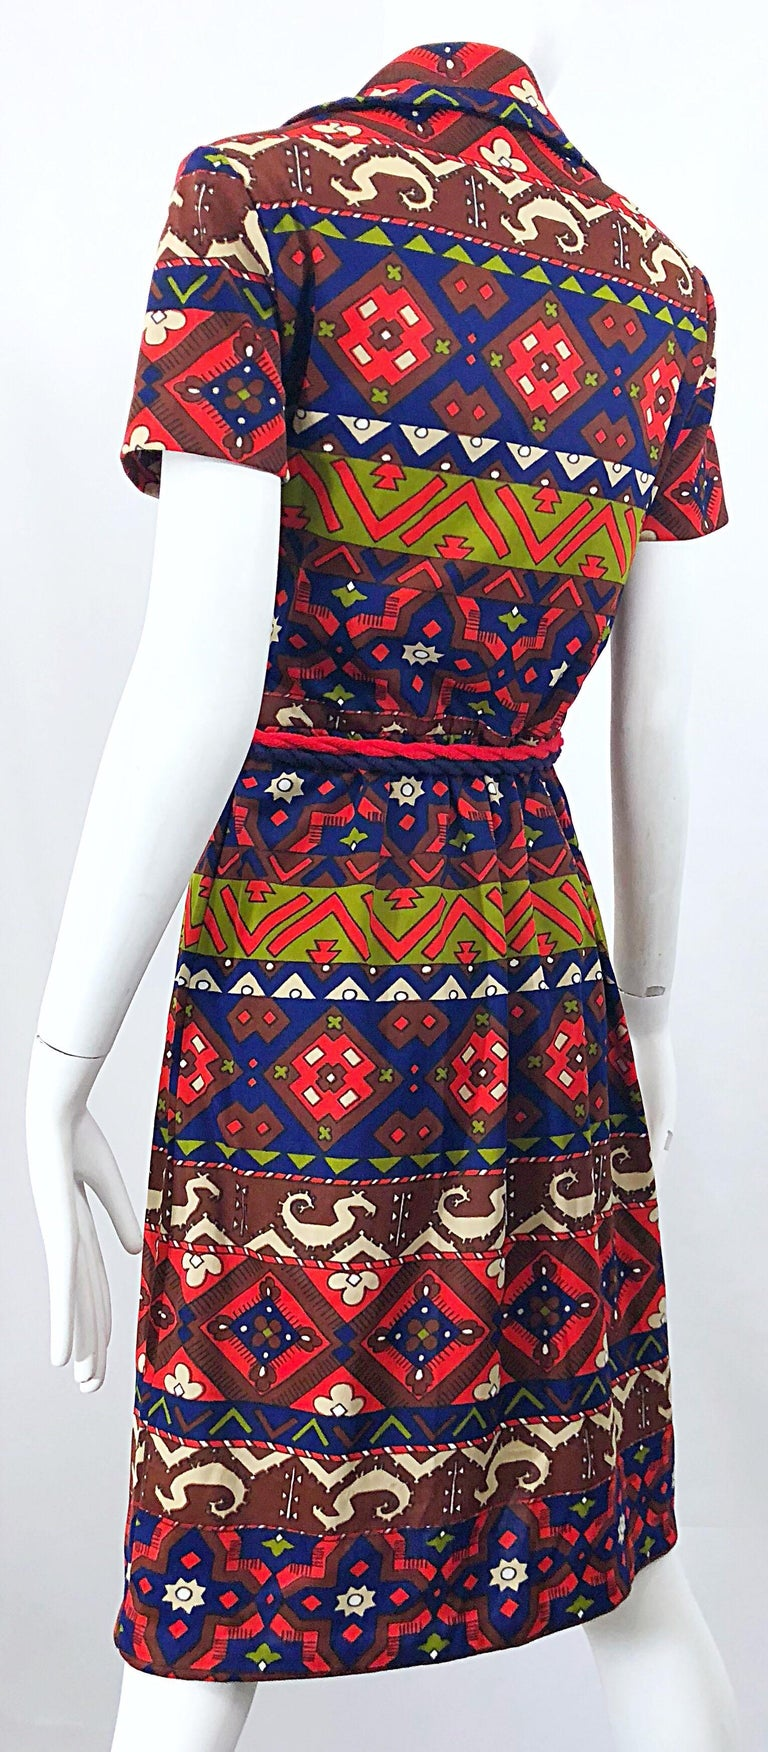 1970s Aztec Novelty Print Amazing Vintage 70s Knit Rope Belted Shirt Dress For Sale 7